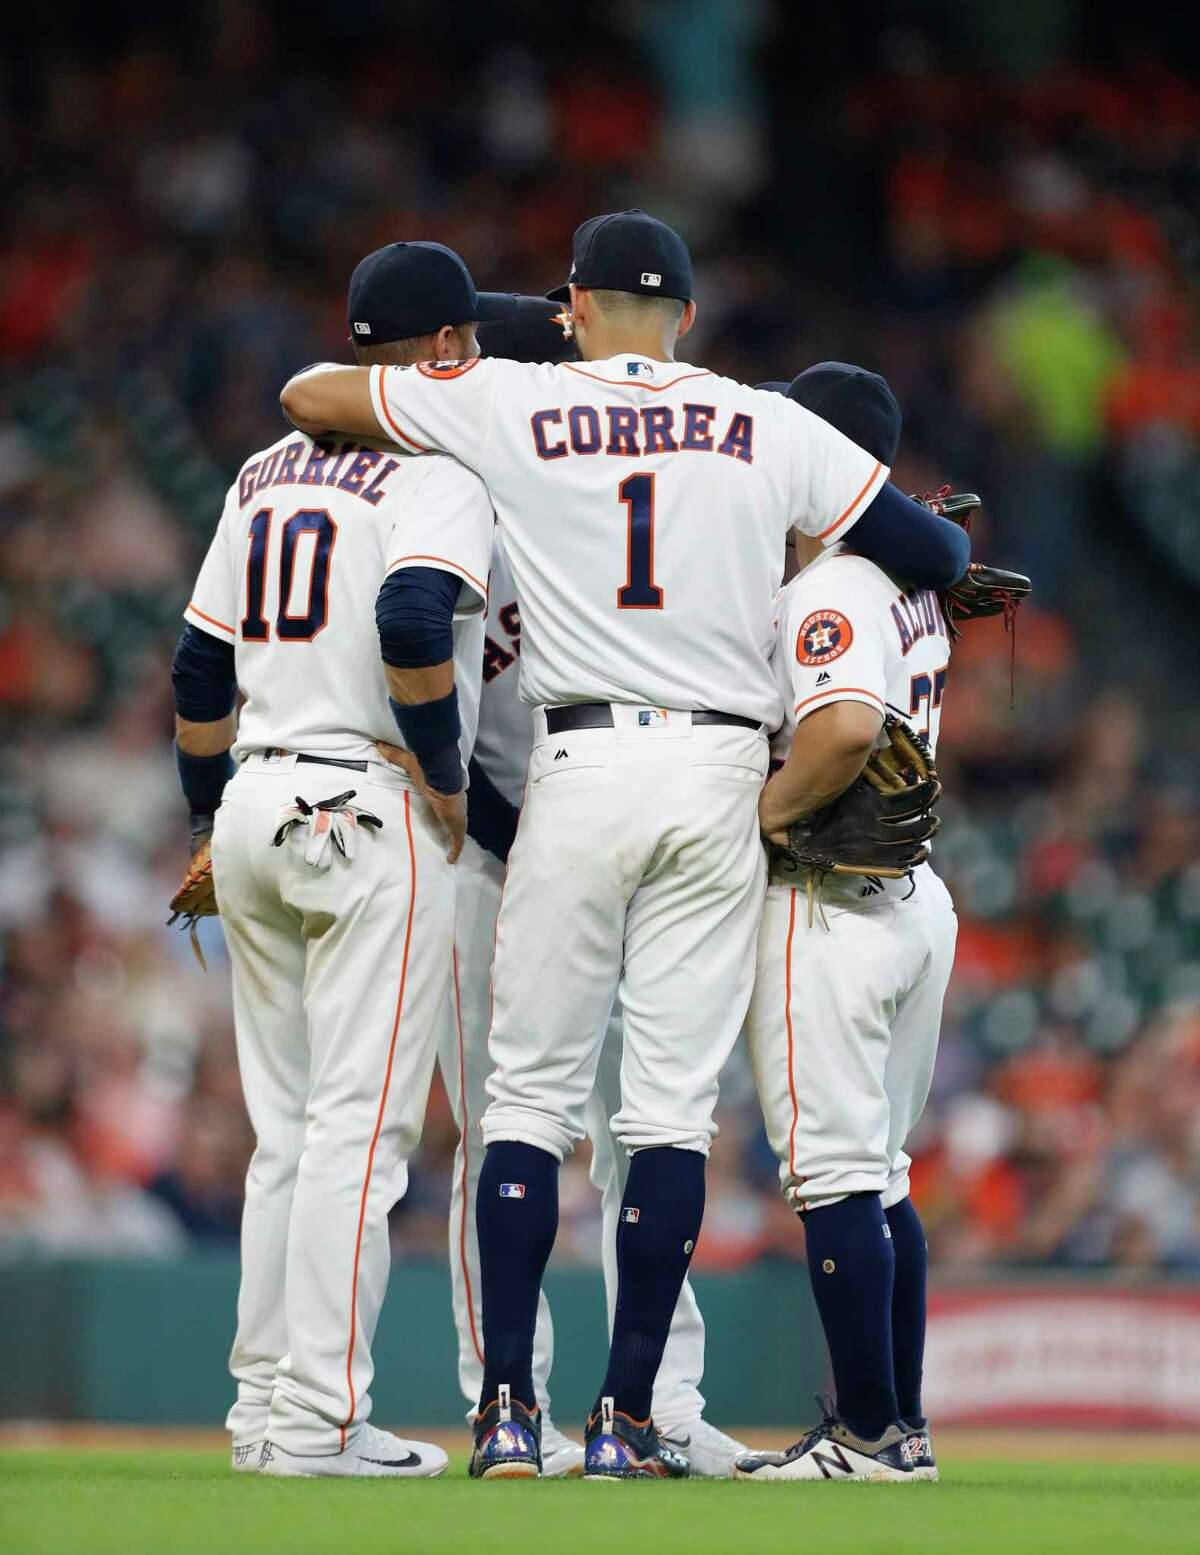 Houston Astros shortstop Carlos Correa (1) conveens the infielders, Yuli Gurriel (10), Alex Bregman (2), and Jose Altuve (27) as relief pitcher Joe Musgrove warmed up on the mound during the eighth inning of an MLB baseball game at Minute Maid Park, Saturday, Sept. 16, 2017, in Houston.